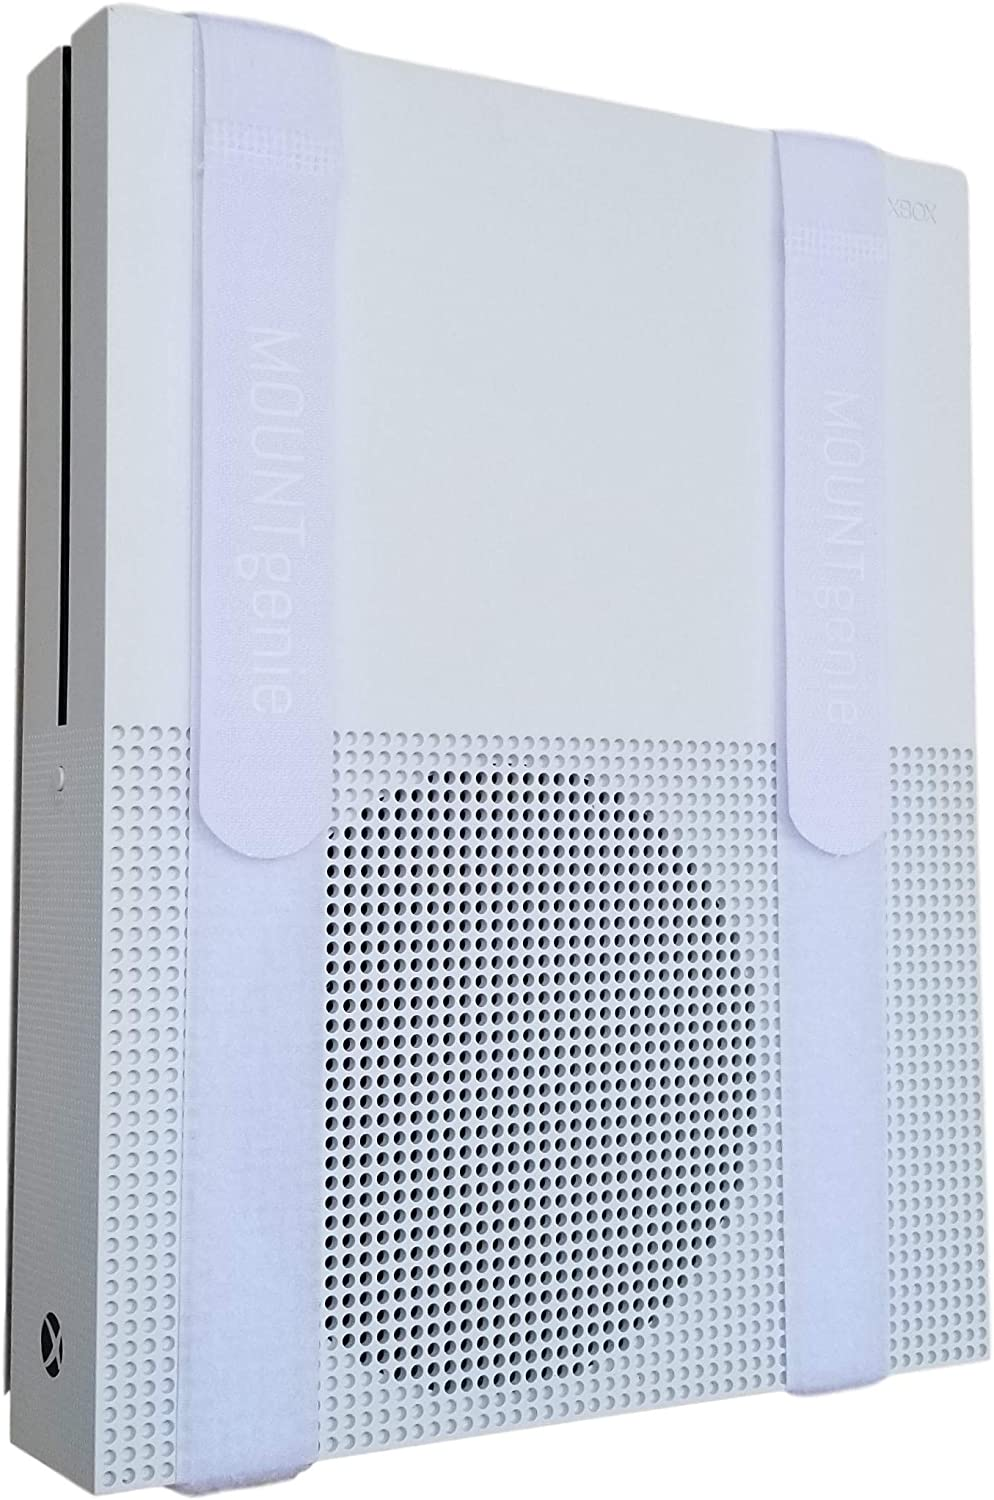 The All-in Wonder Mount by Mount Genie (1-Pack): The Easiest Wall Mount for All Components Routers Modems Xbox Playstation DVRs | One Size Fits All | Designed for Home and Business (White)